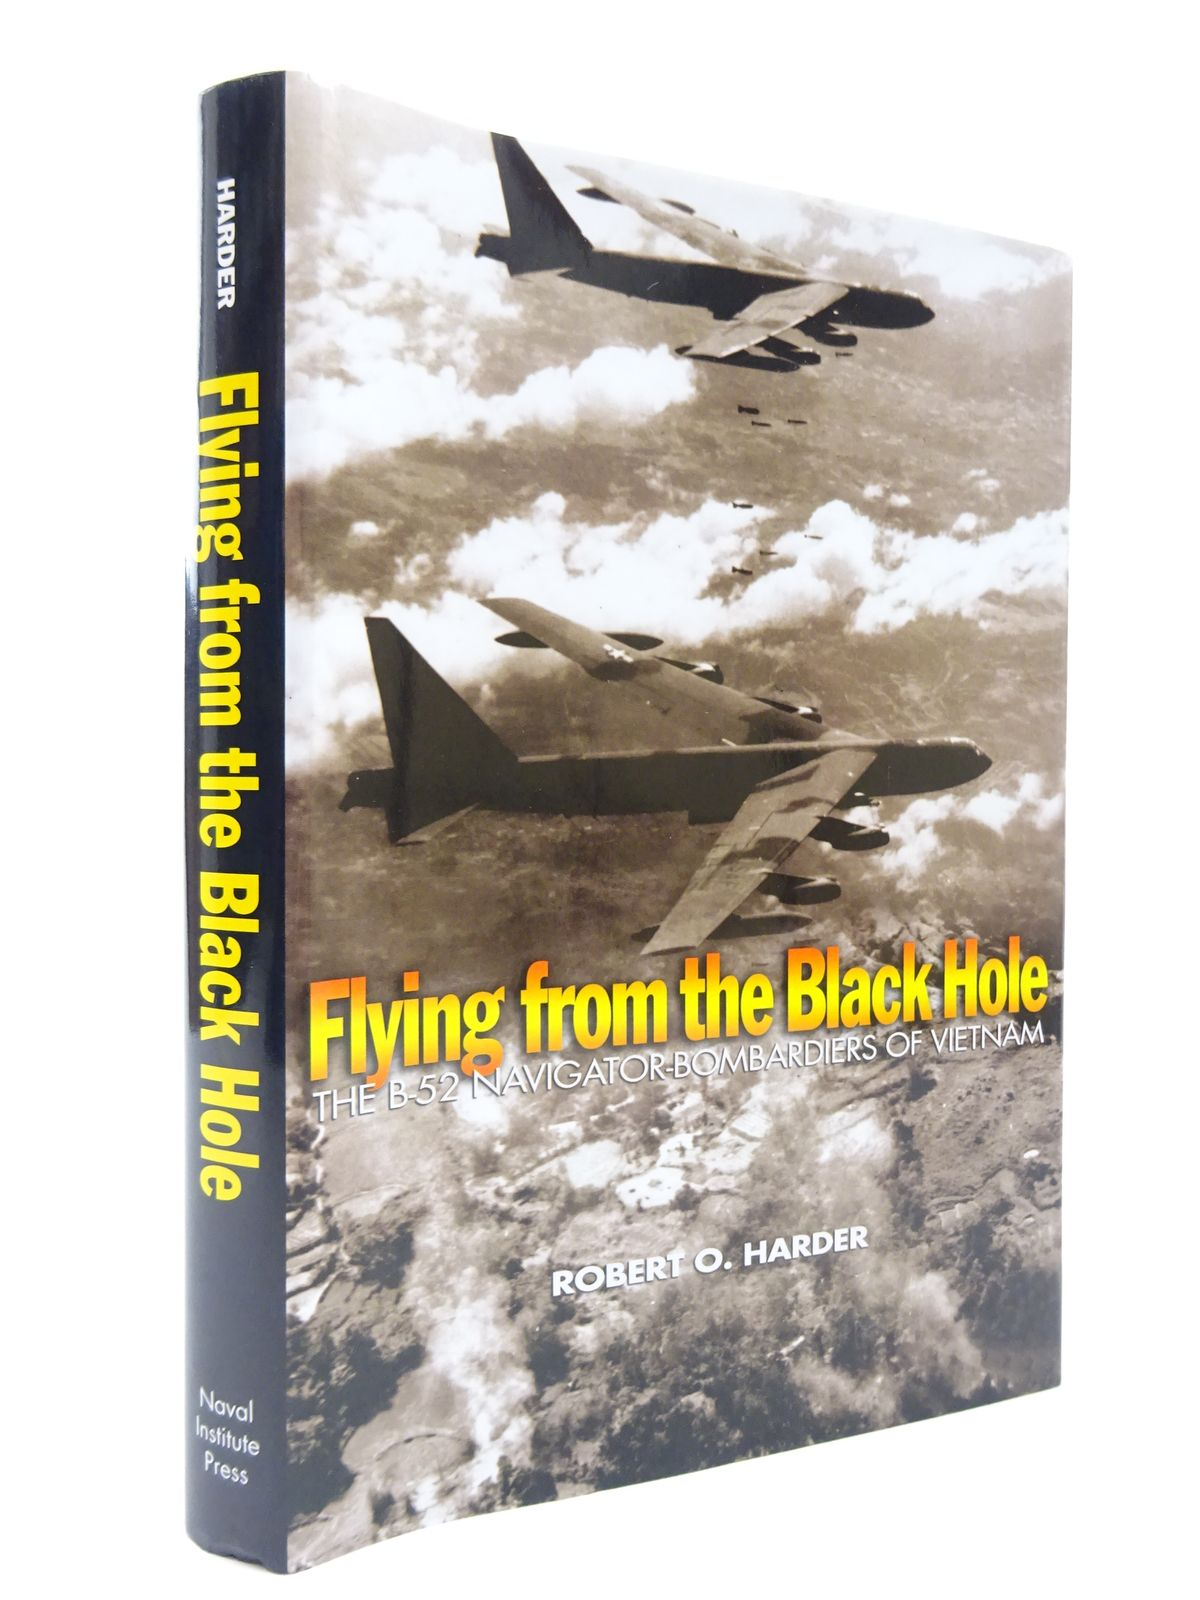 Photo of FLYING FROM THE BLACK HOLE THE B-52 NAVIGATOR-BOMBARDIERS OF VIETNAM written by Harder, Robert O. published by Naval Institute Press (STOCK CODE: 1815490)  for sale by Stella & Rose's Books